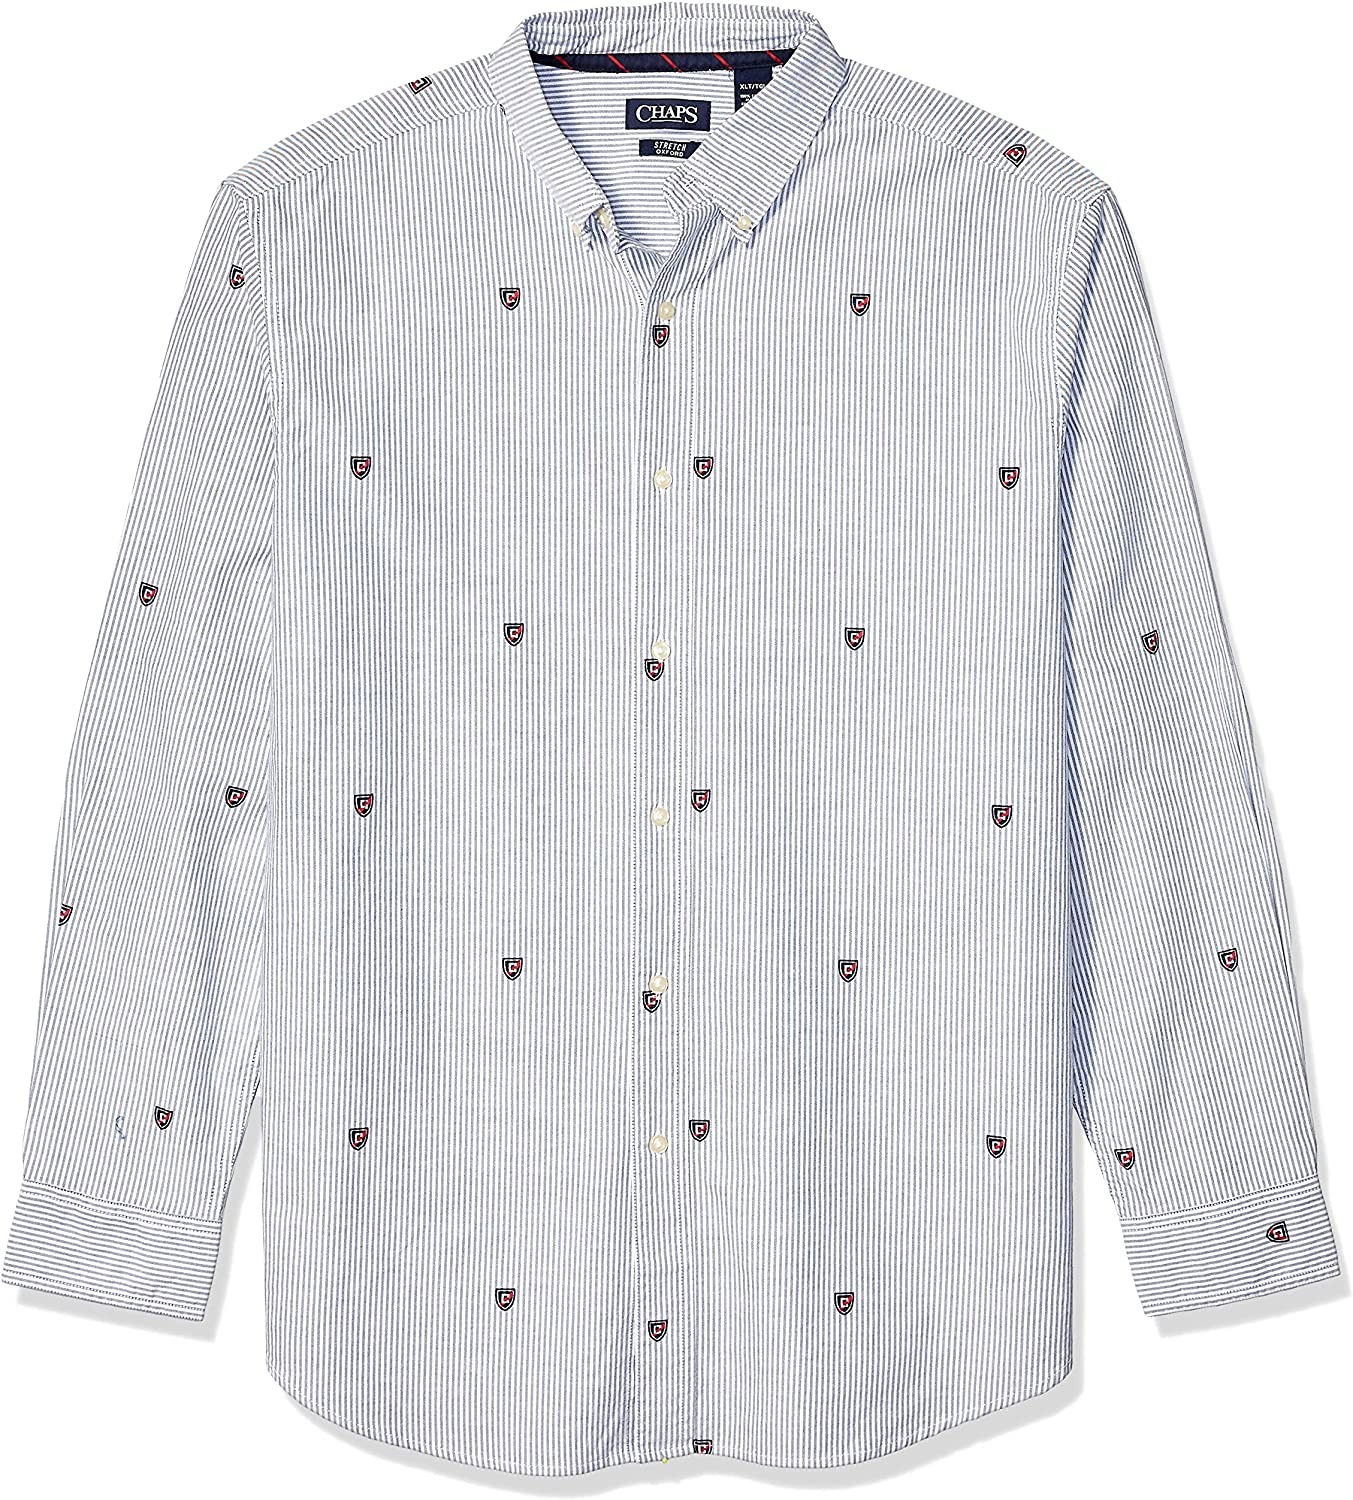 Chaps Men's Big and Tall Long Sleeve Stretch Oxford Button Down Shirt